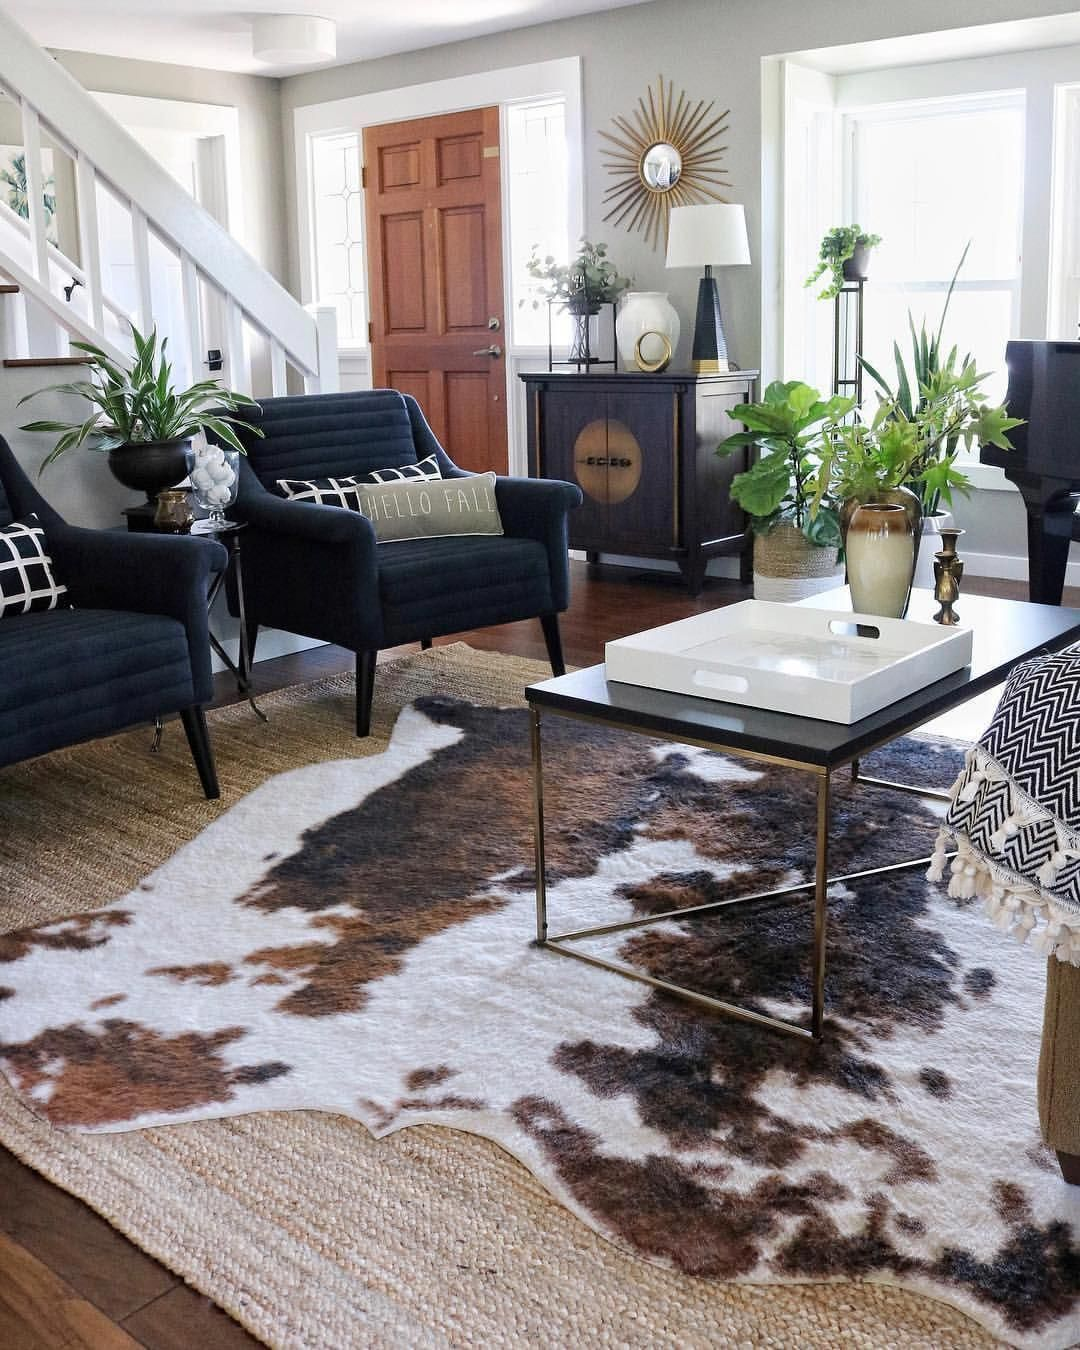 Layered rugs #farmhousedecor  Teppich wohnzimmer, Kuhfell teppich